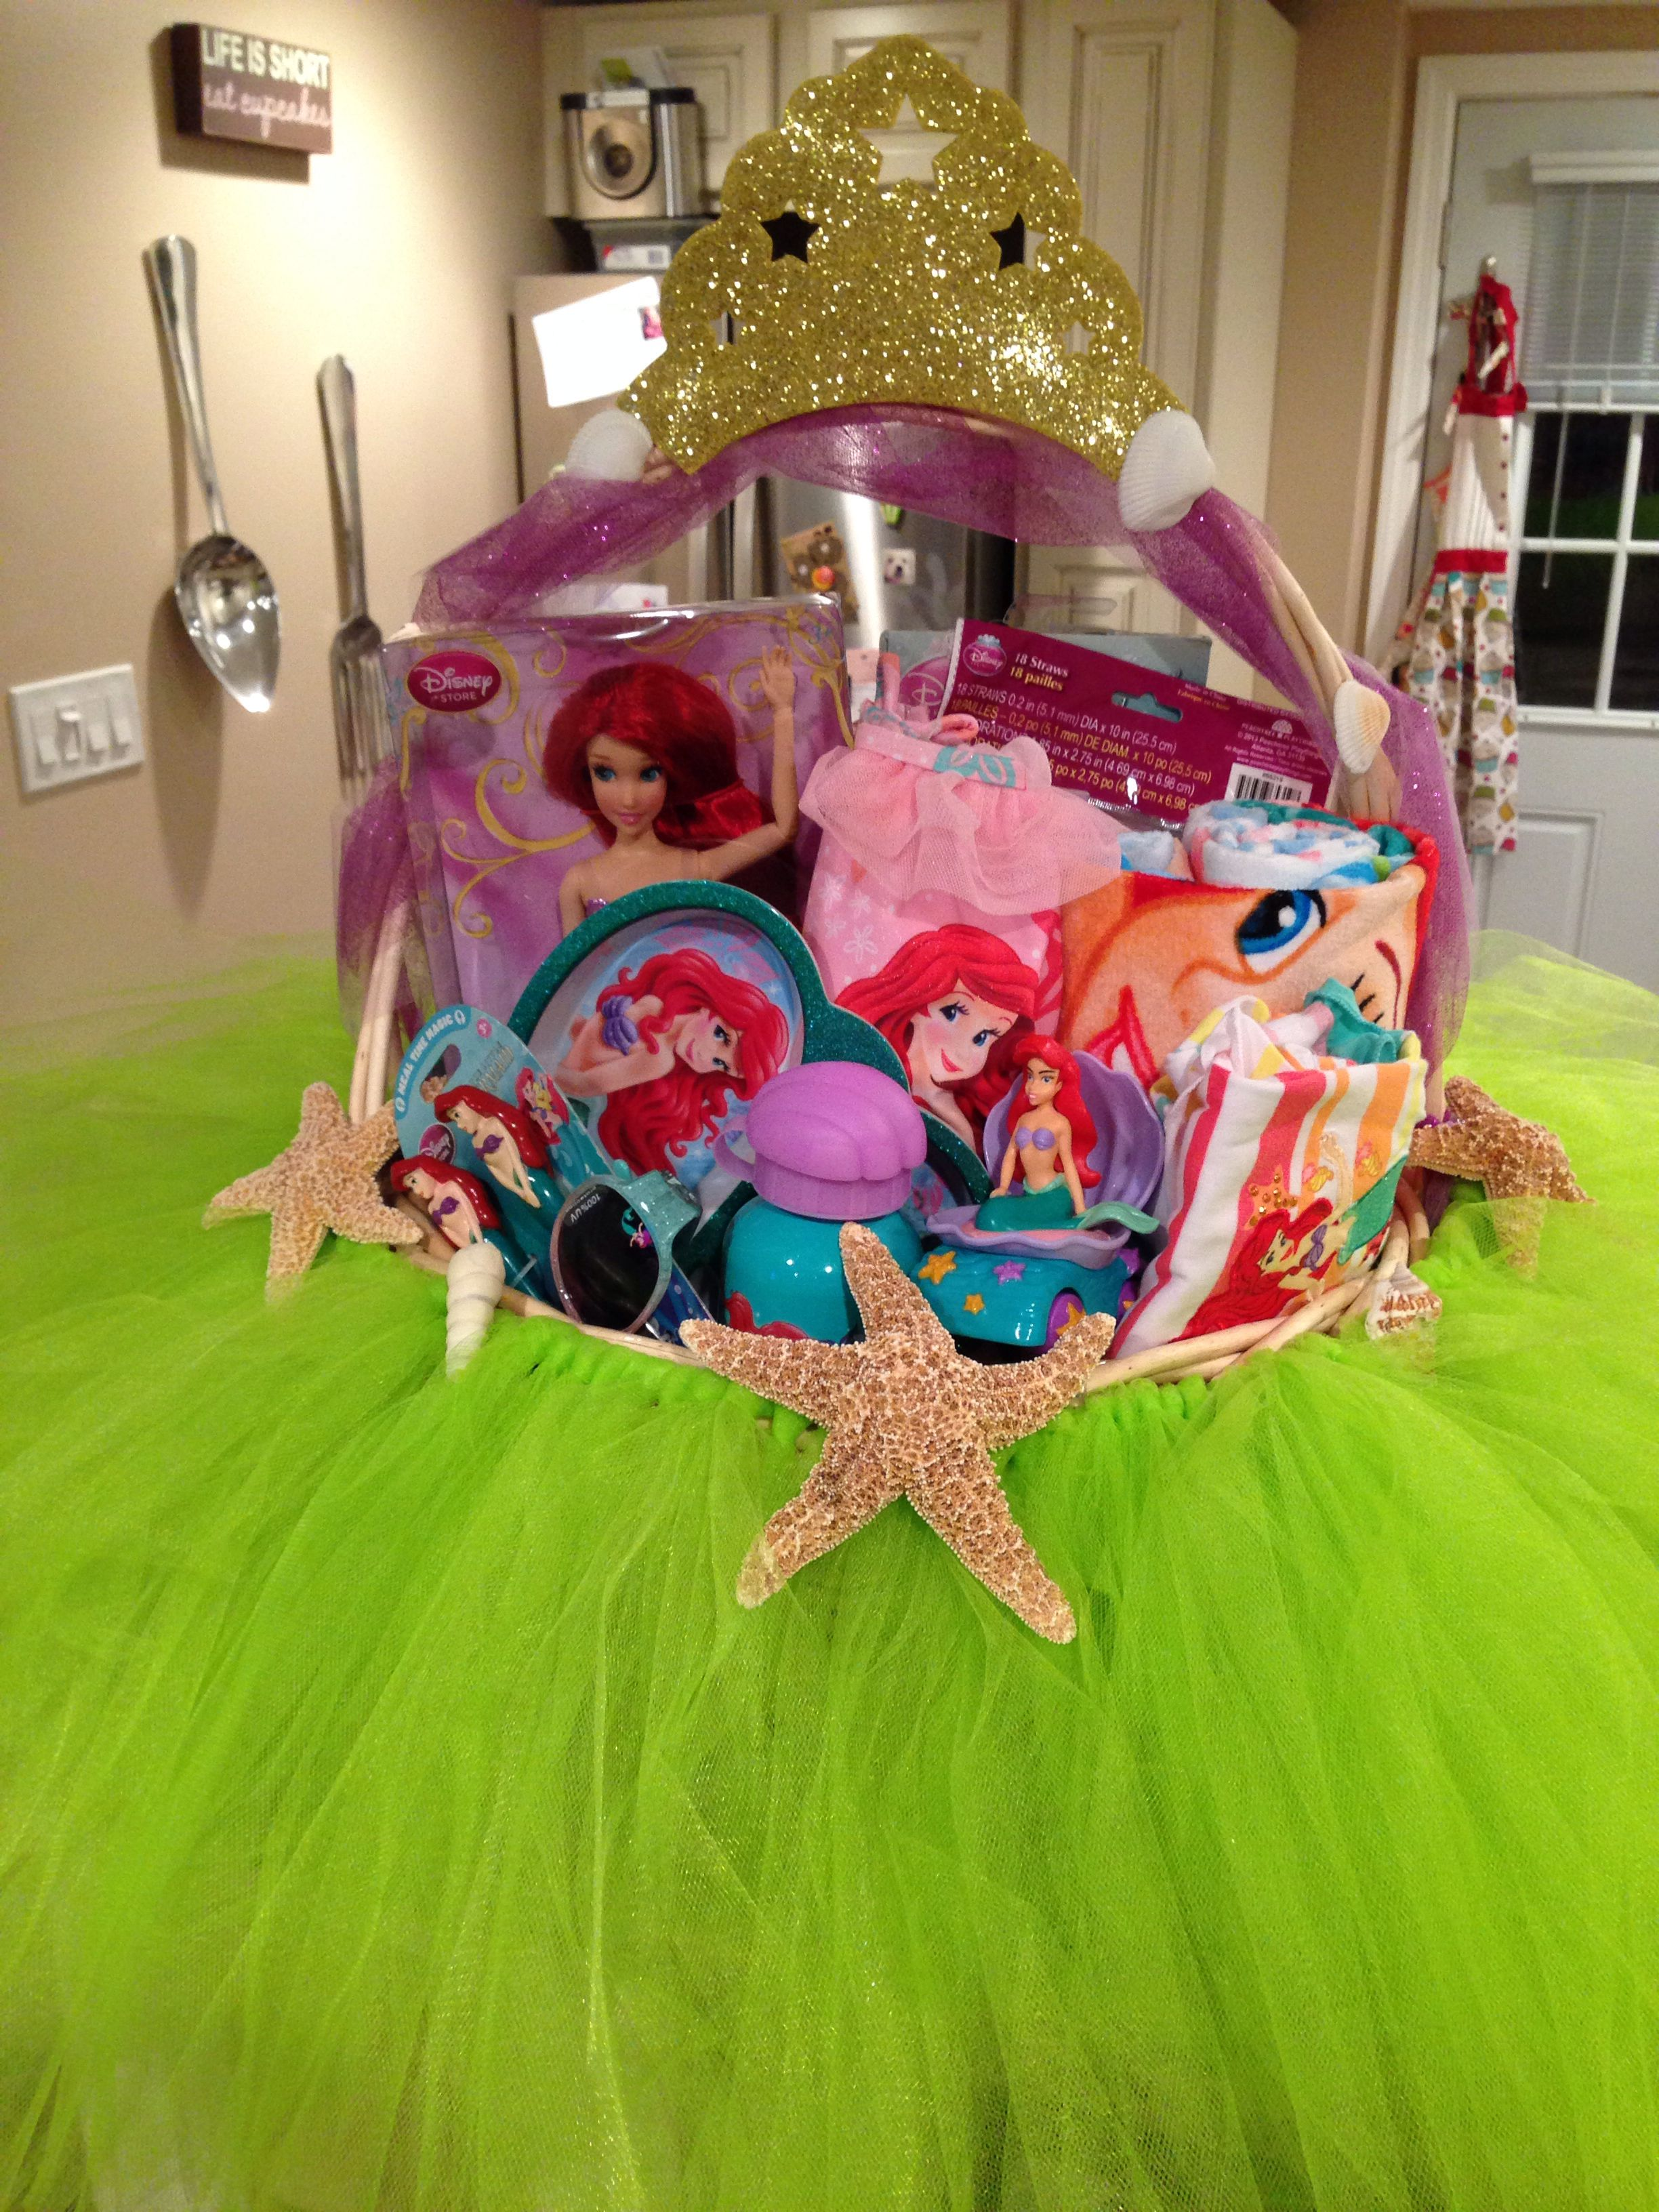 Mermaid Gift Ideas Hannah 39s Third Easter Basket Disney 39s The Little Mermaid